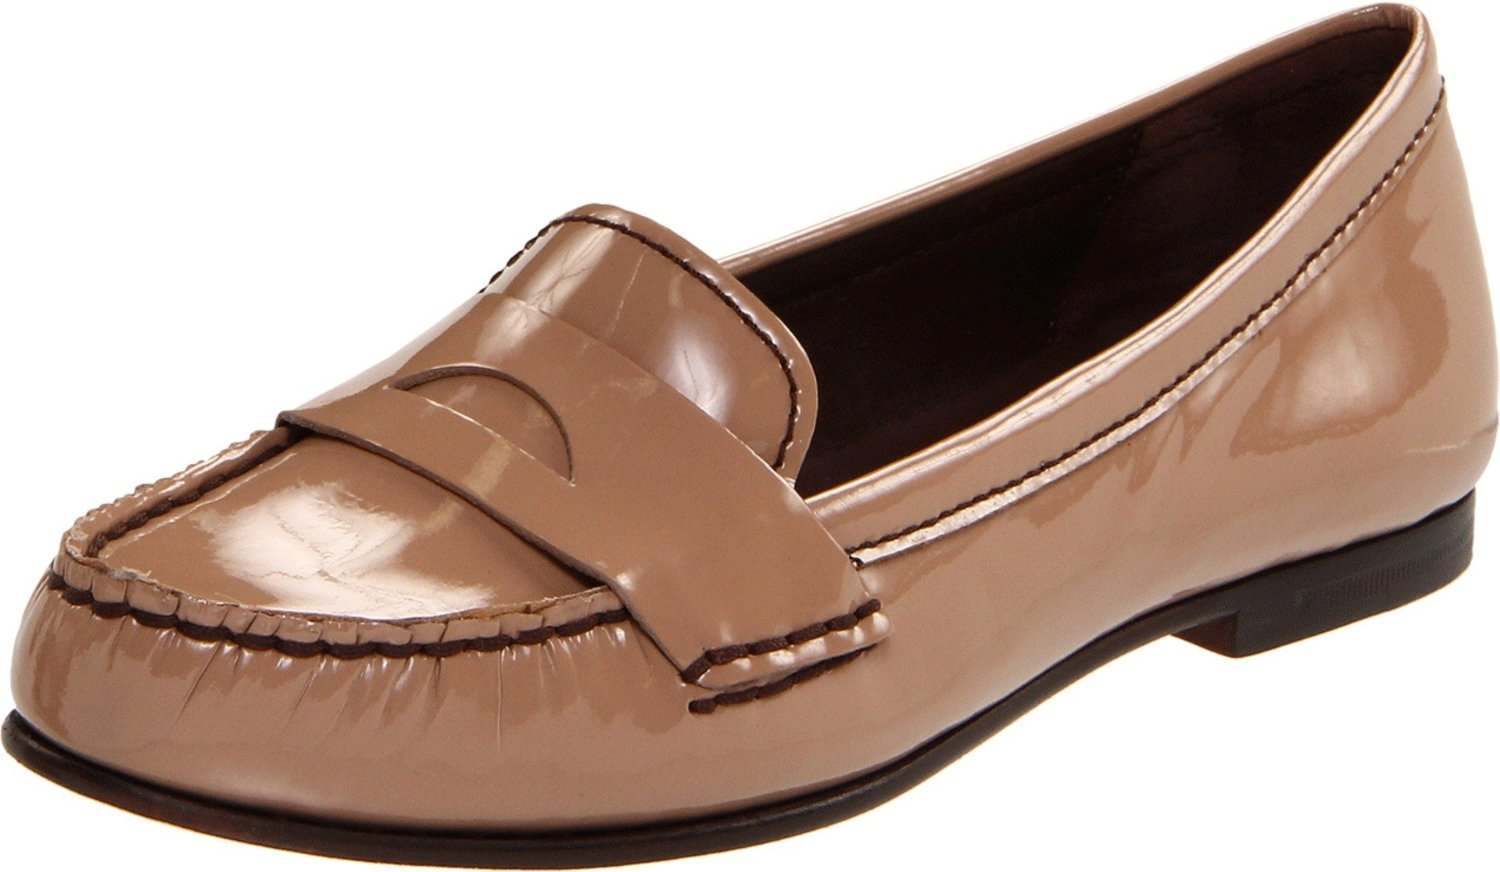 cole haan cole haan womens sloane penny loafer in brown. Black Bedroom Furniture Sets. Home Design Ideas